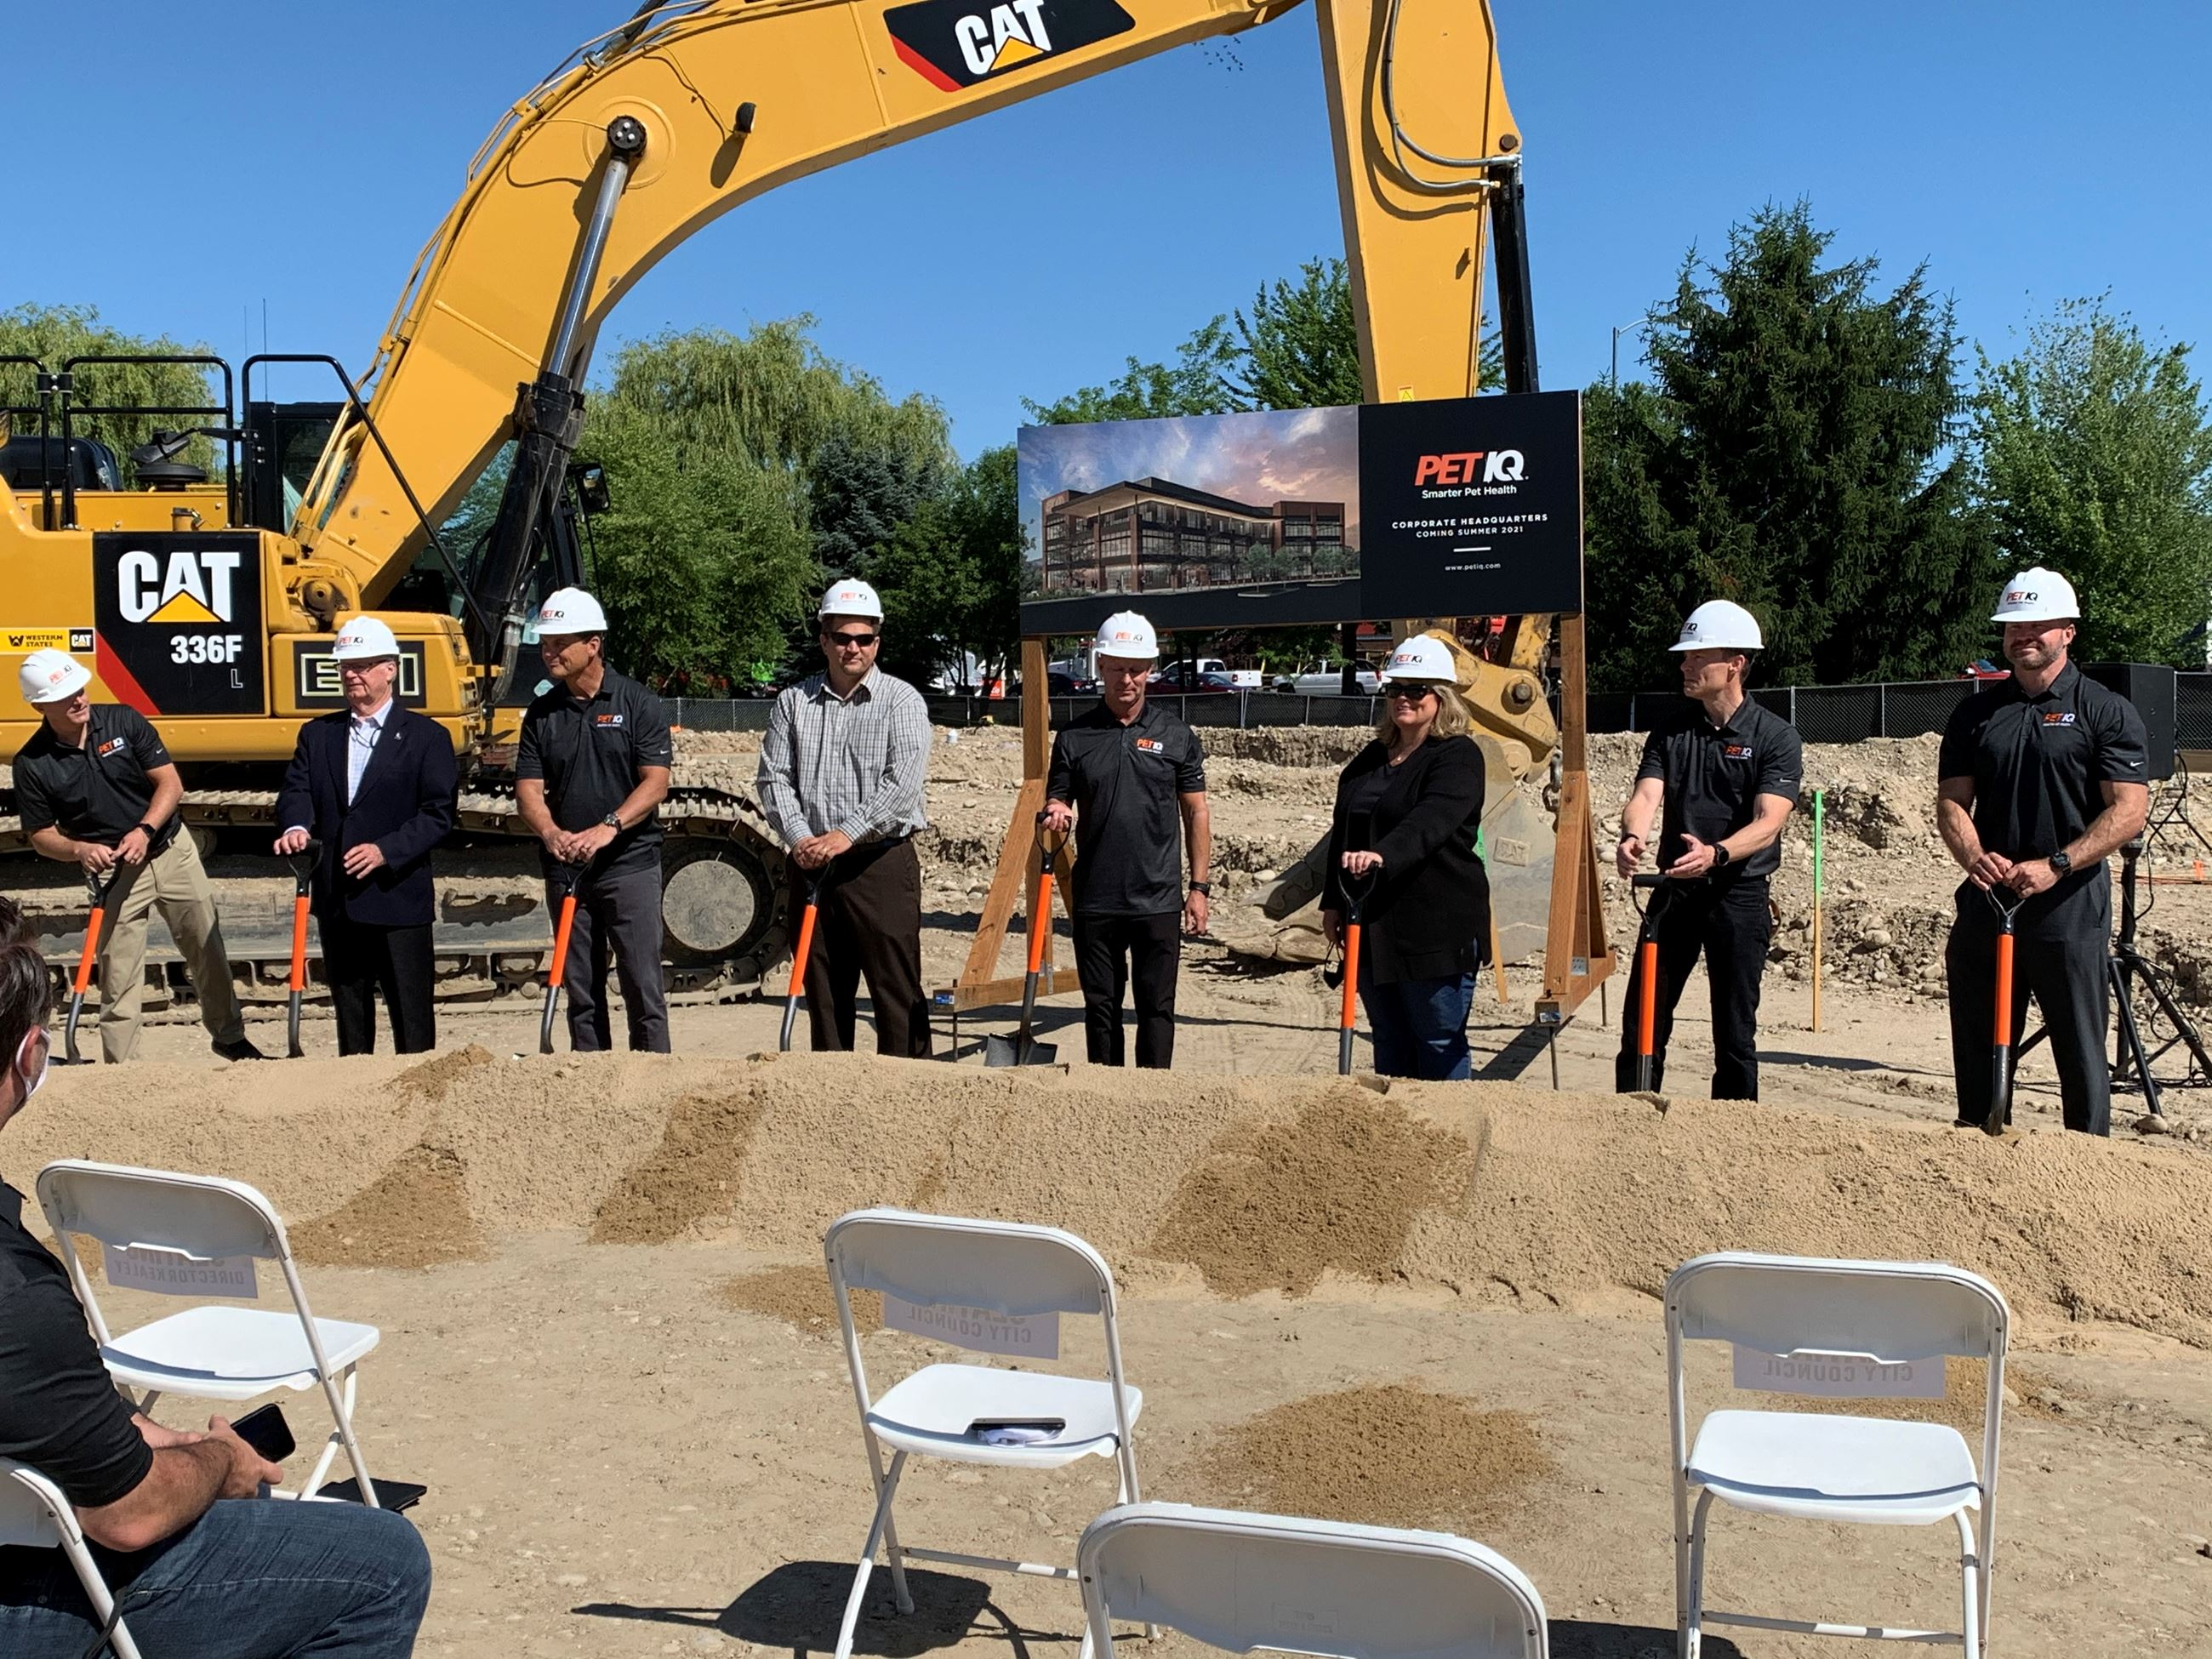 PetIQ Groundbreaking Photo